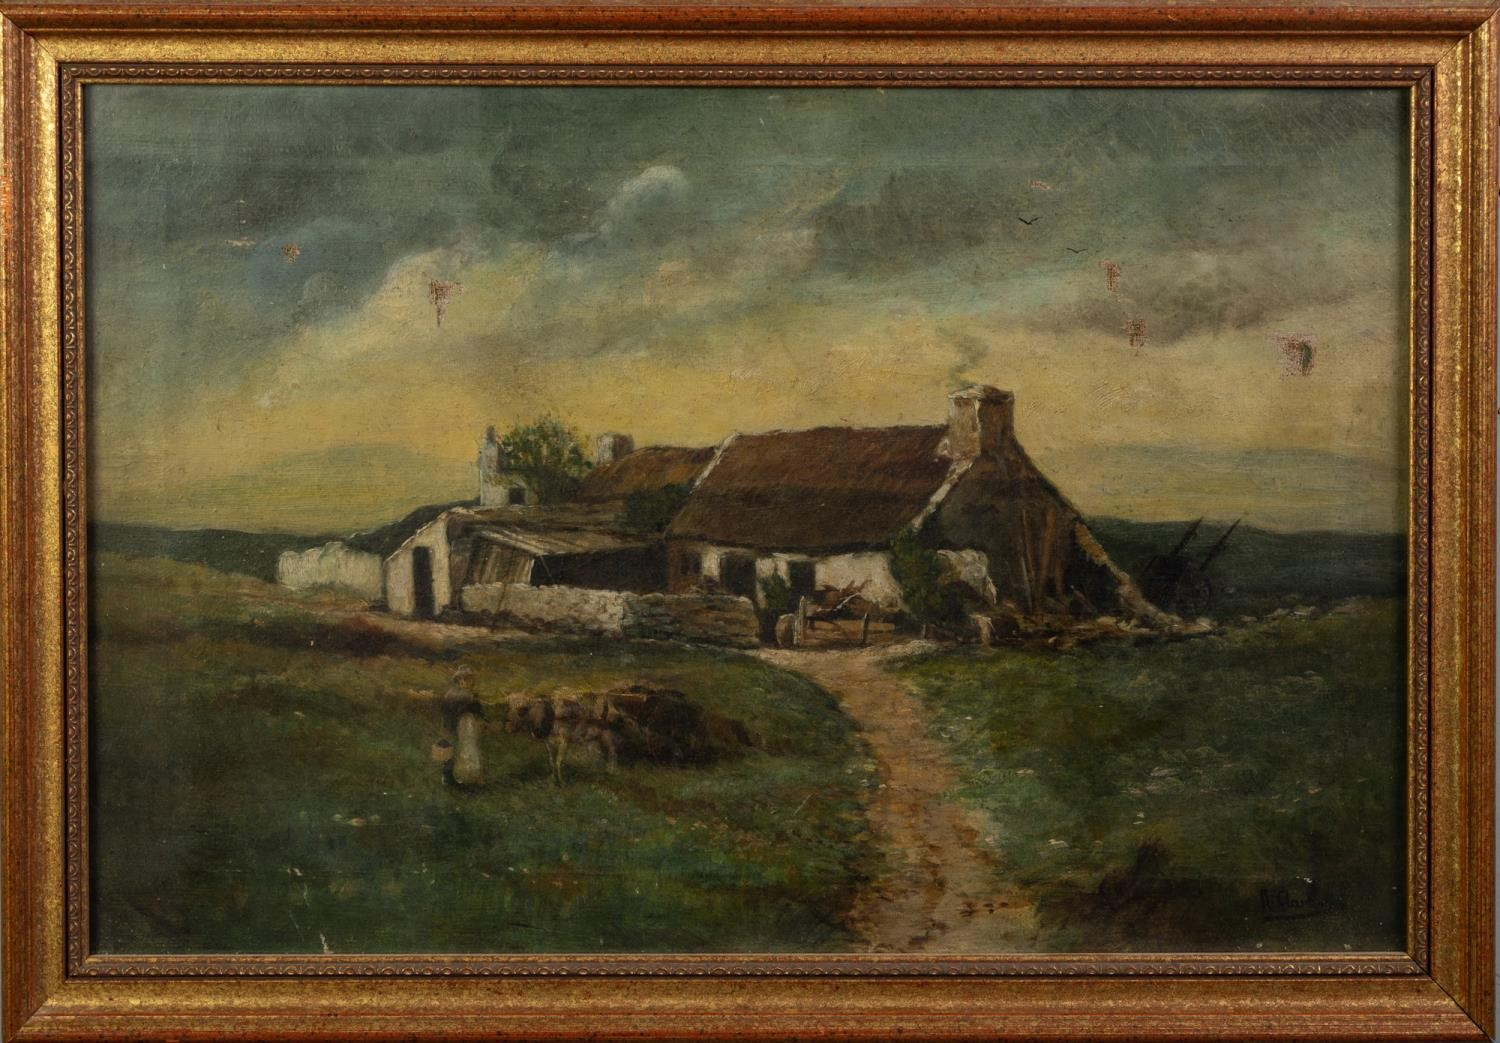 UNATTRIBUTED (NINETEENTH CENTURY) OIL PAINTING Rural landscape with farm building and a maid with